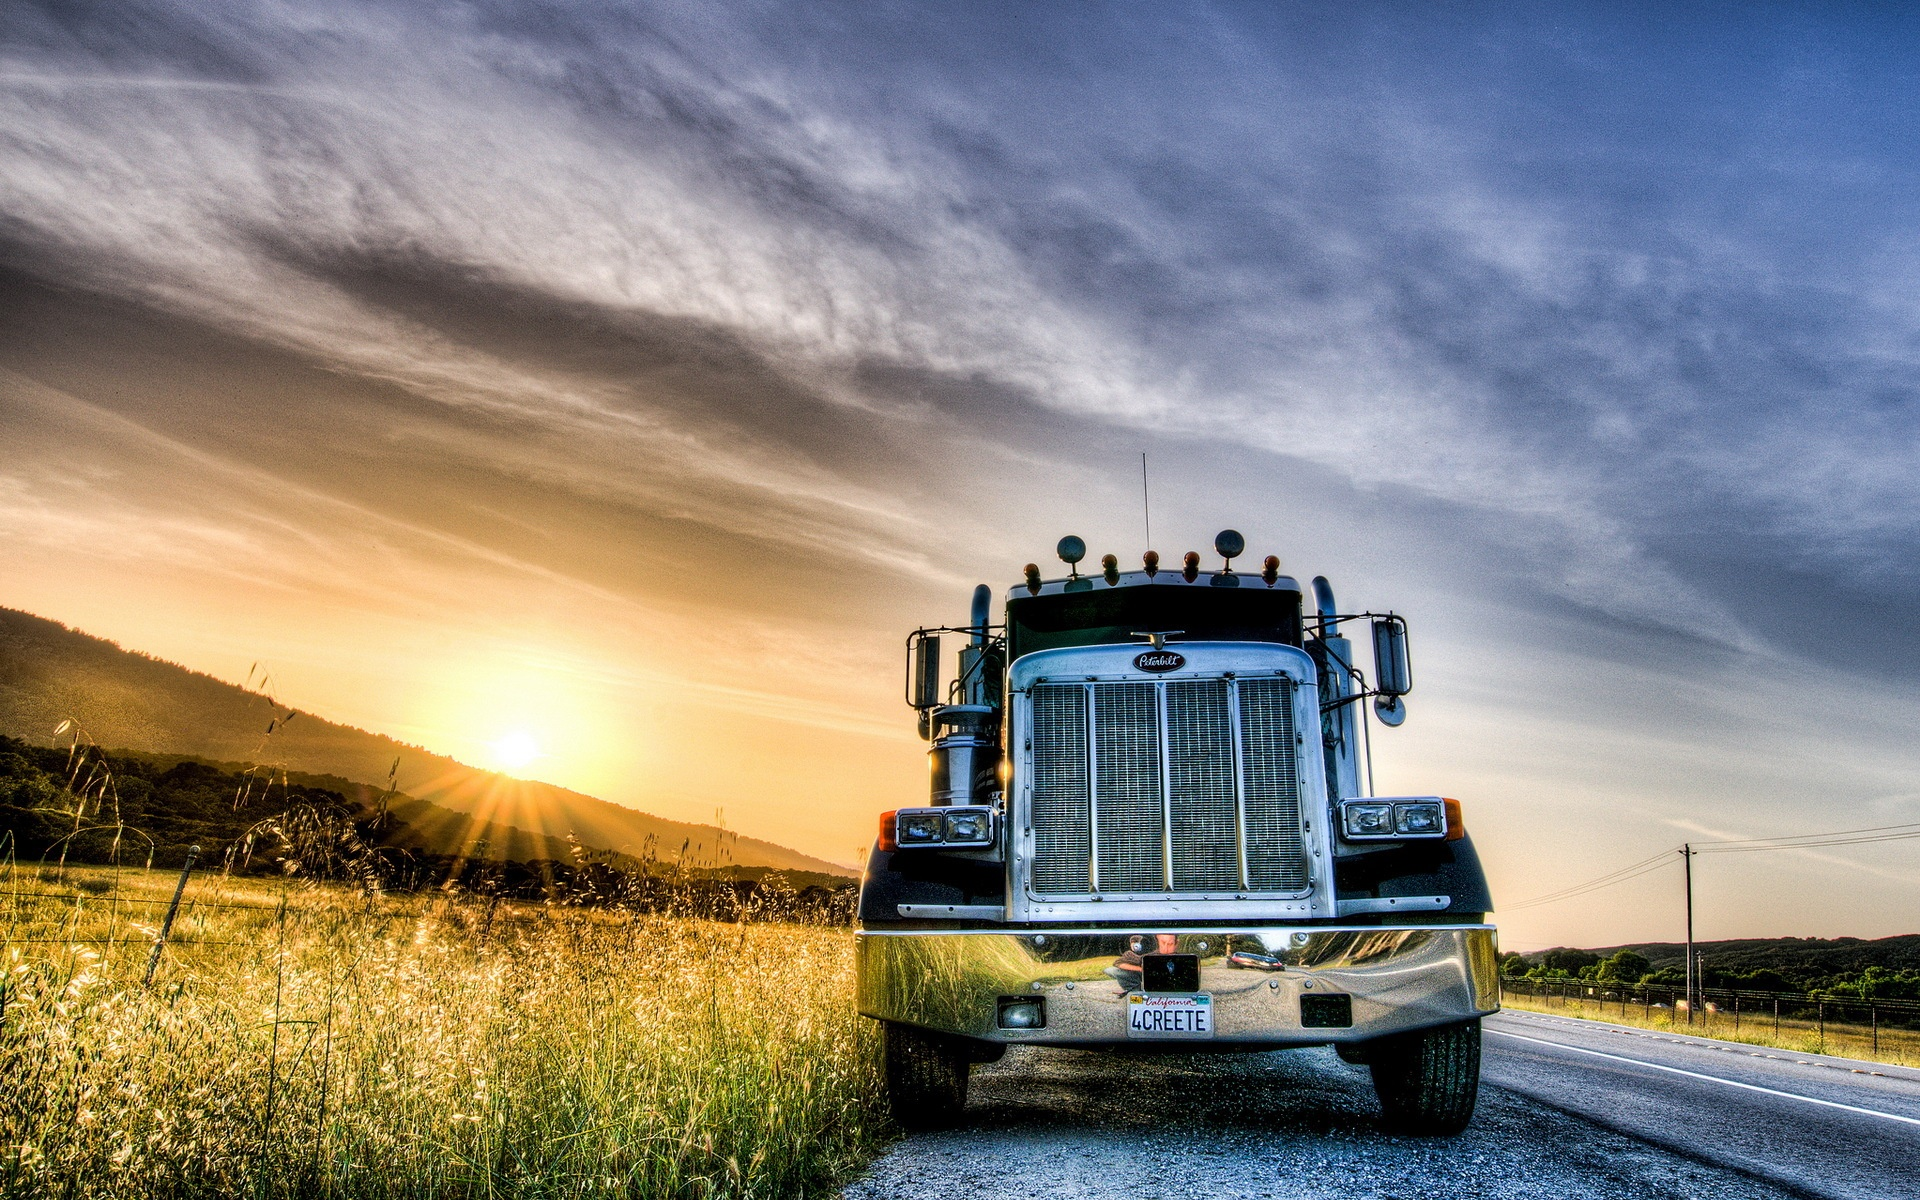 Wallpaper Sunset Road Truck 1920x1200 HD Picture Image